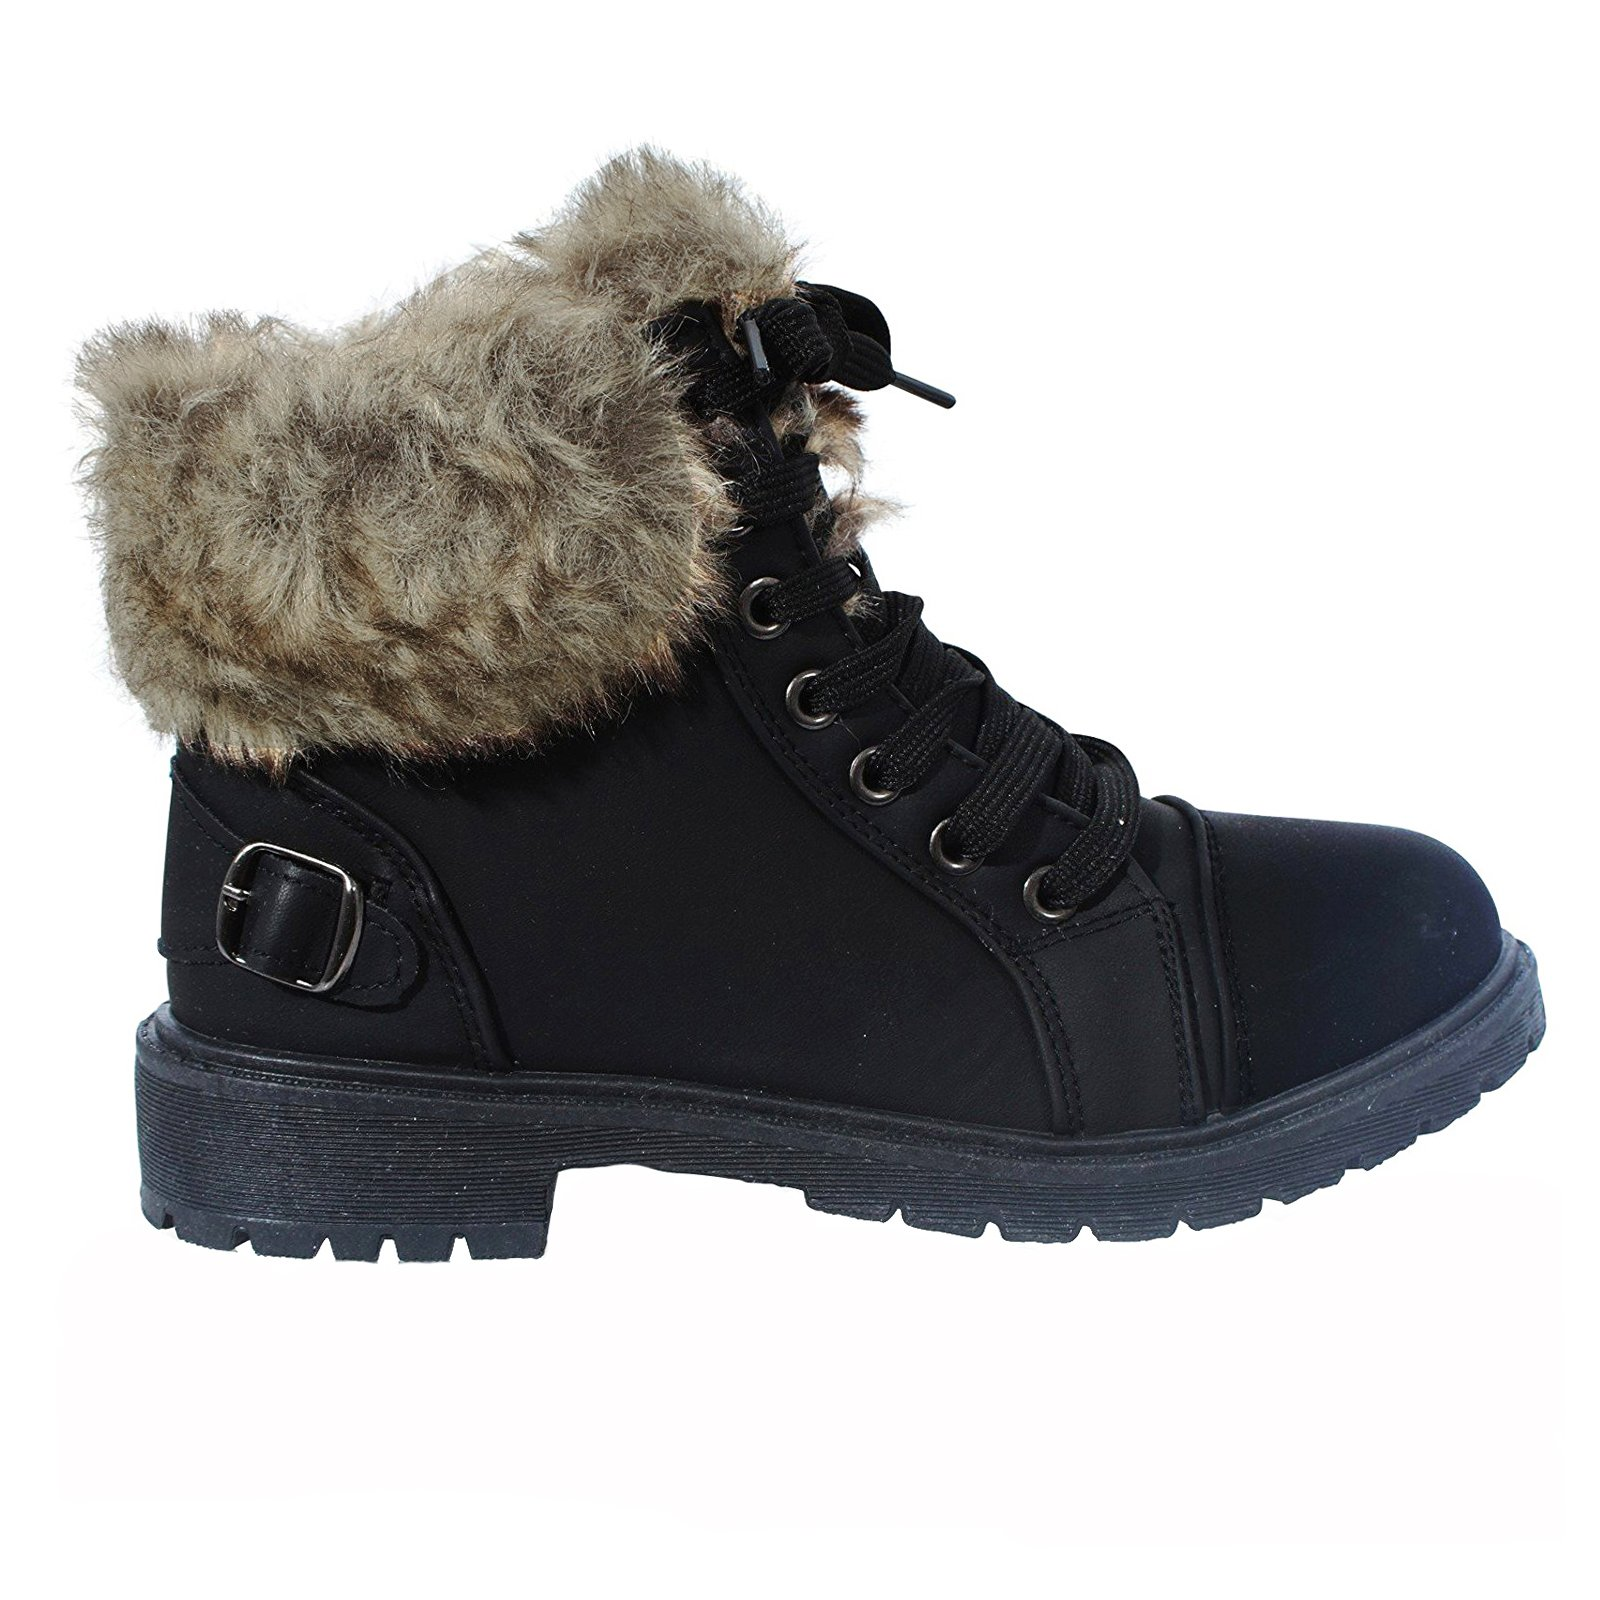 LADIES WOMENS ANKLE FUR LINED LACE UP GRIP SOLE WINTER ARMY COMBAT BOOTS SZ 3-8